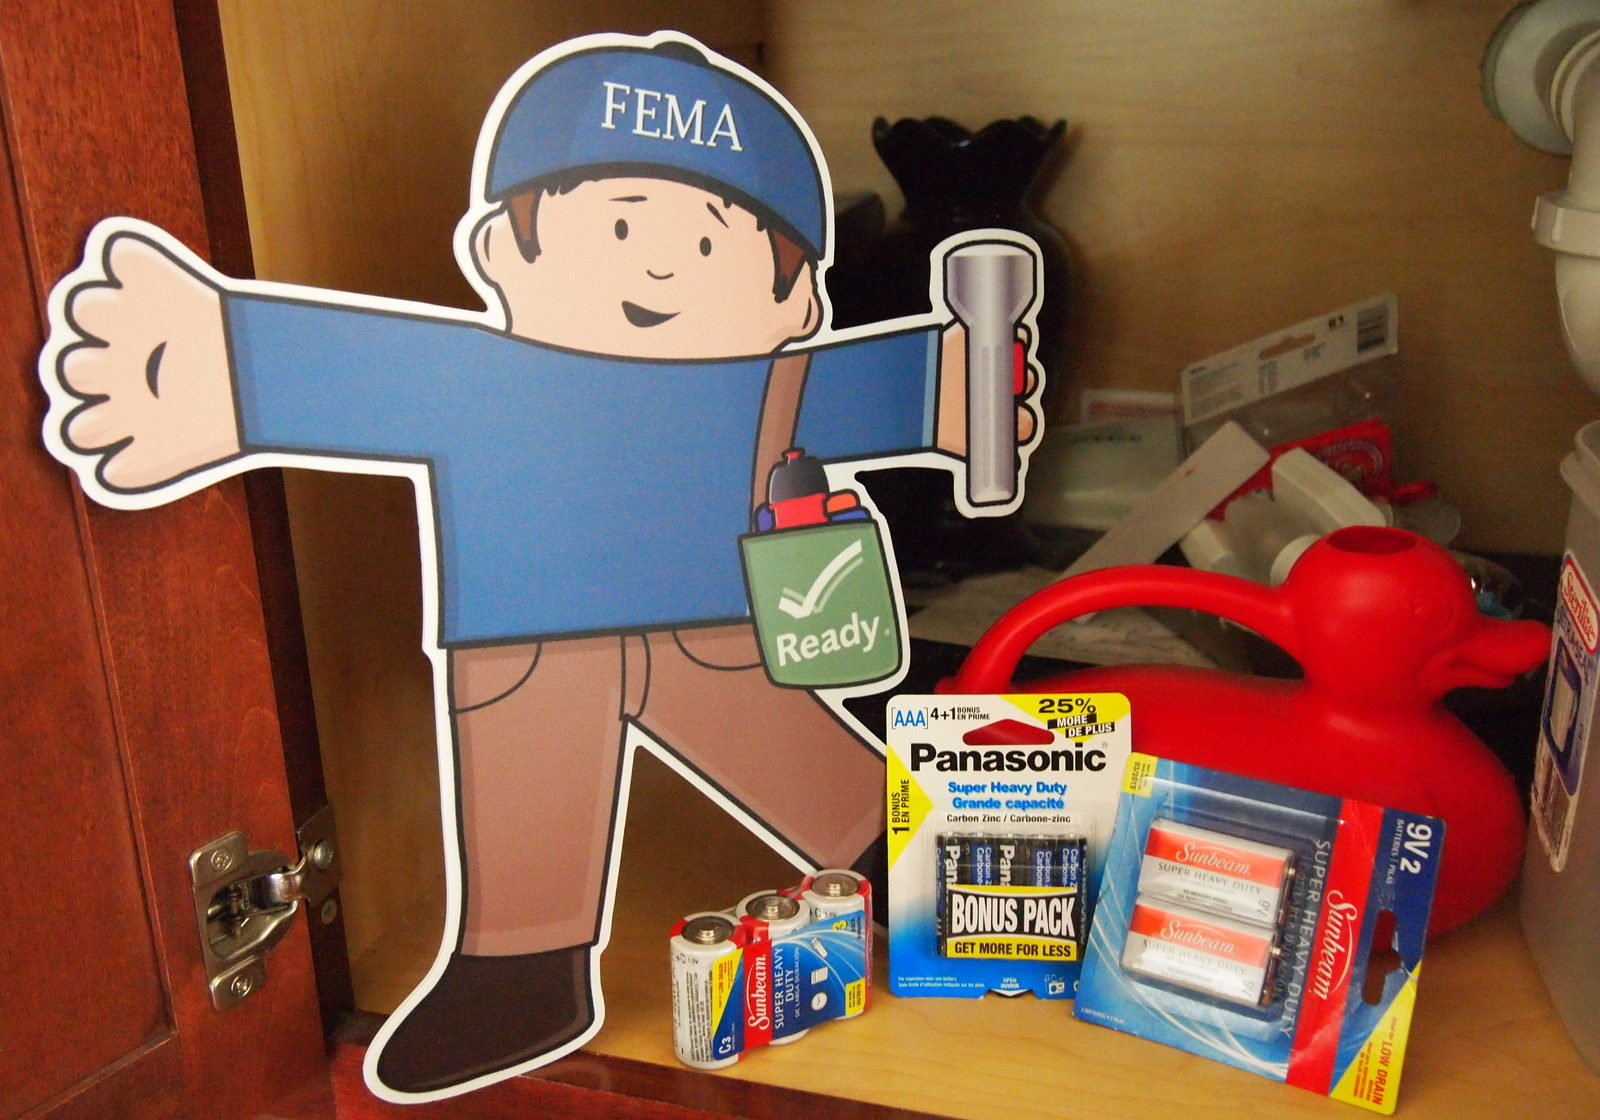 bowie-md-may-30-2013-flat-stanley-participates-in-a-scavenger-hunt-to-find-e5dfce-1600.jpg